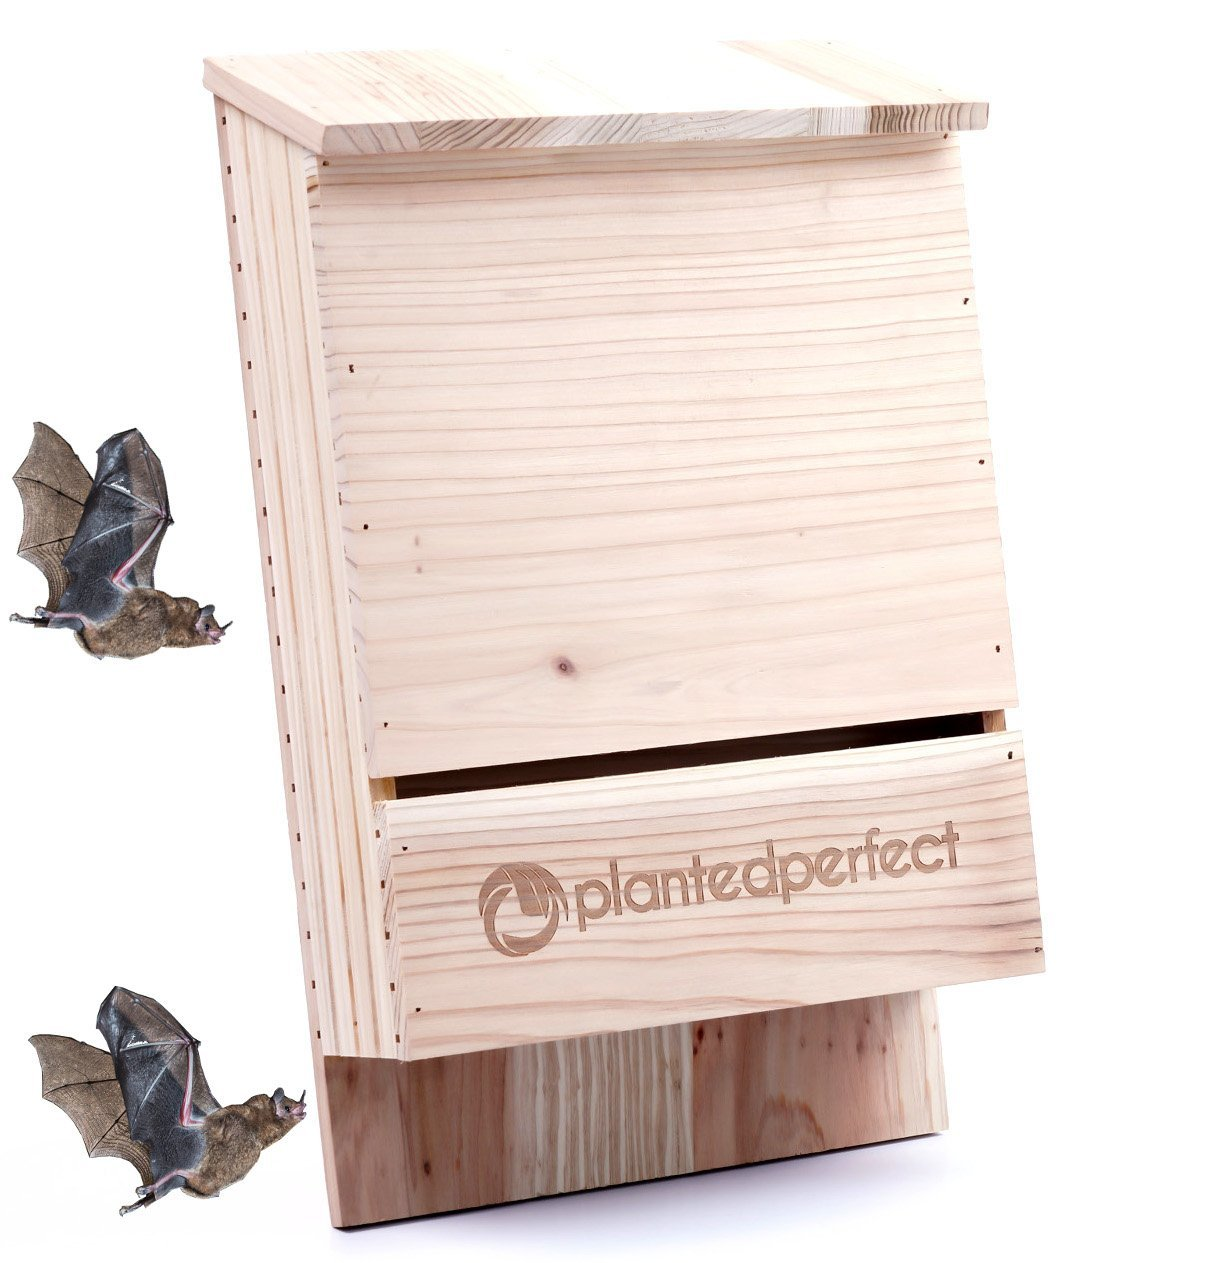 BAT HOUSE PEST CONTROL - Bats Shelter Protects Home From Mosquitoes and Bugs - Dual Chamber Wooden Bat Boxes Built to Last - Houses Up to 360 Bats - Repels Pests From Garden (Large, brown)